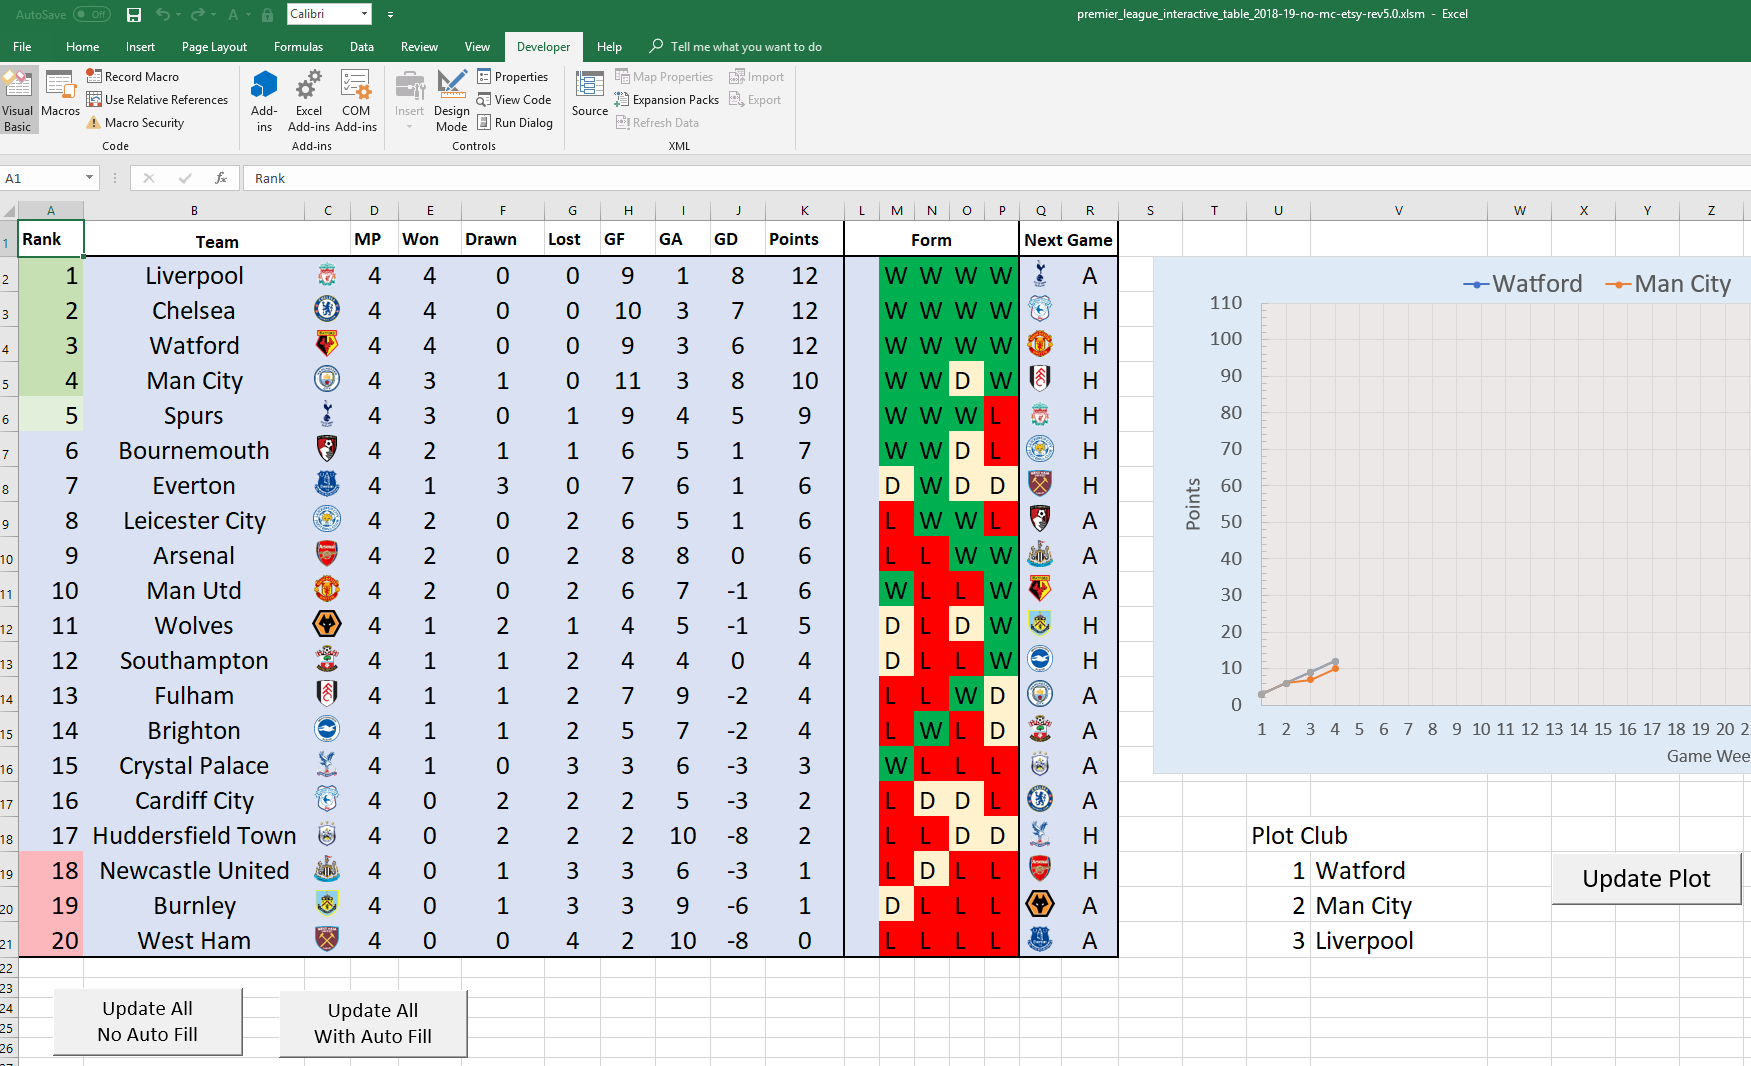 Interactive 201819 premier league table in excel download the league table stopboris Gallery